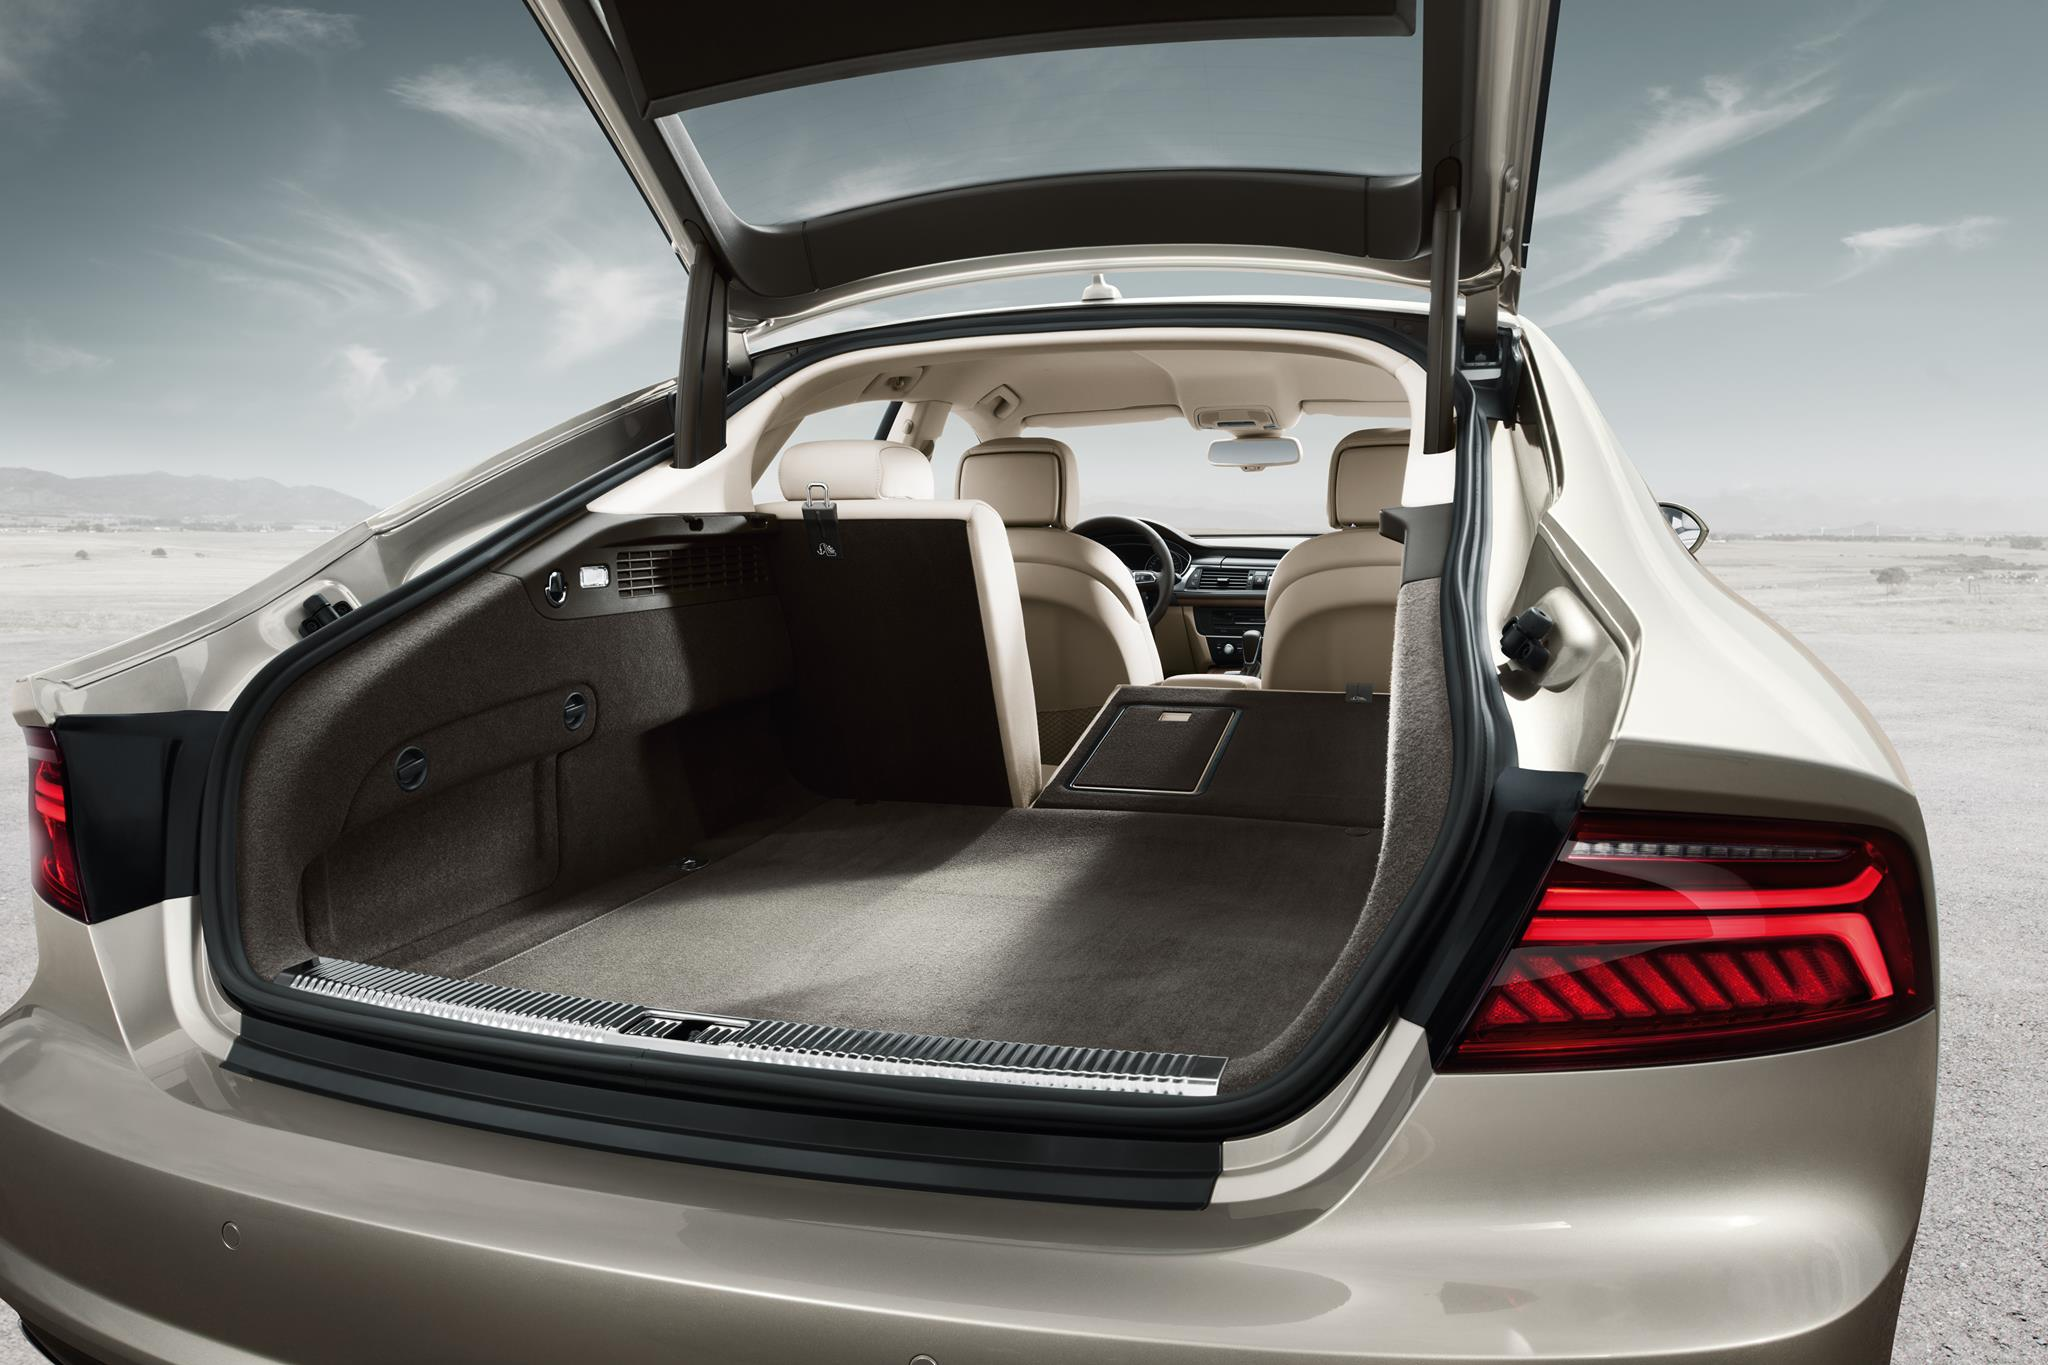 The 2015 Audi A7 Sportback Is Presence Redefined With New Design Amp Technologies Senatus